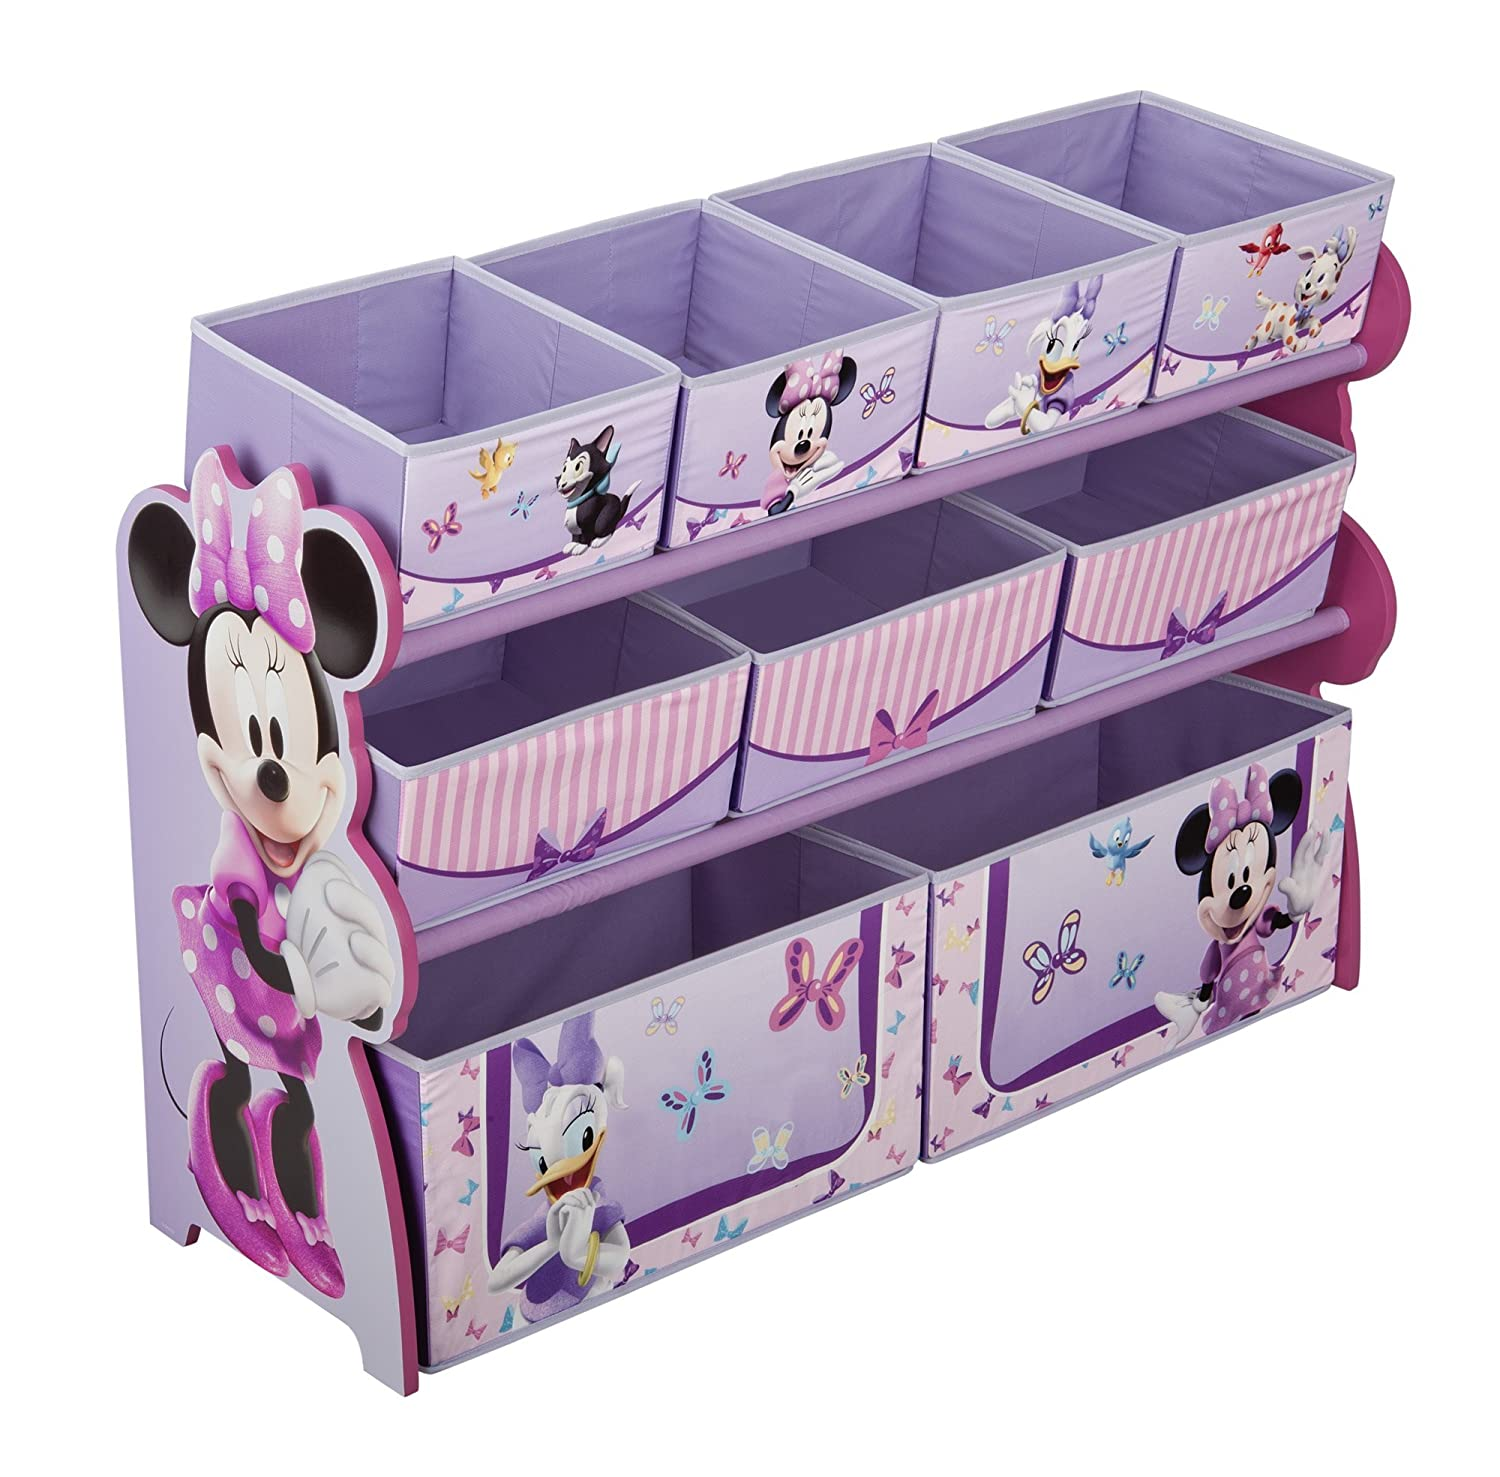 Delta Children Deluxe 9 Bin Toy Organizer, Disney Minnie Mouse TB84835MM